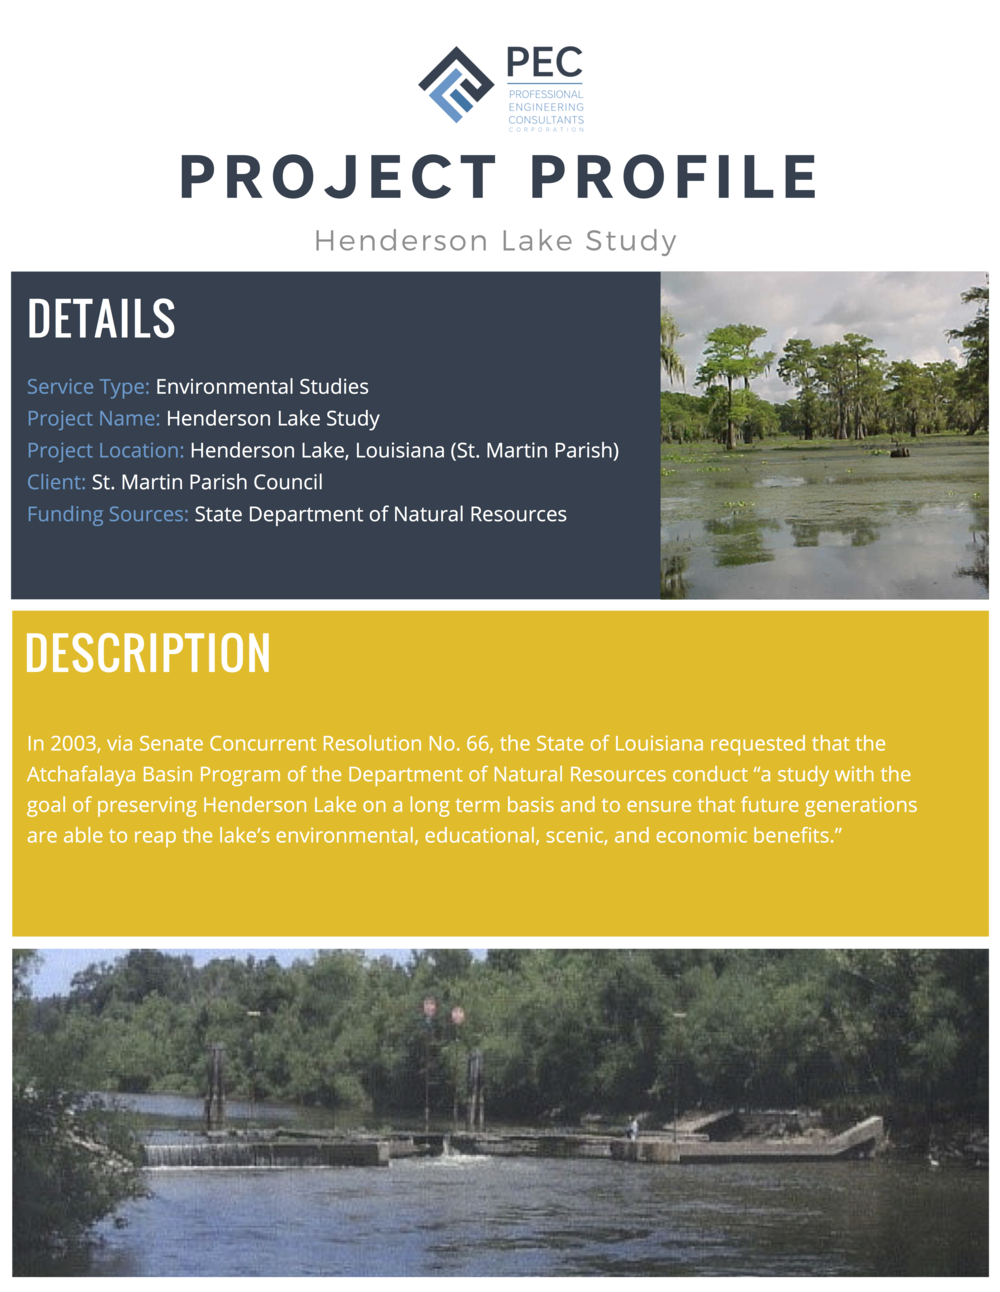 Project Profile_Henderson Lake Study.jpg